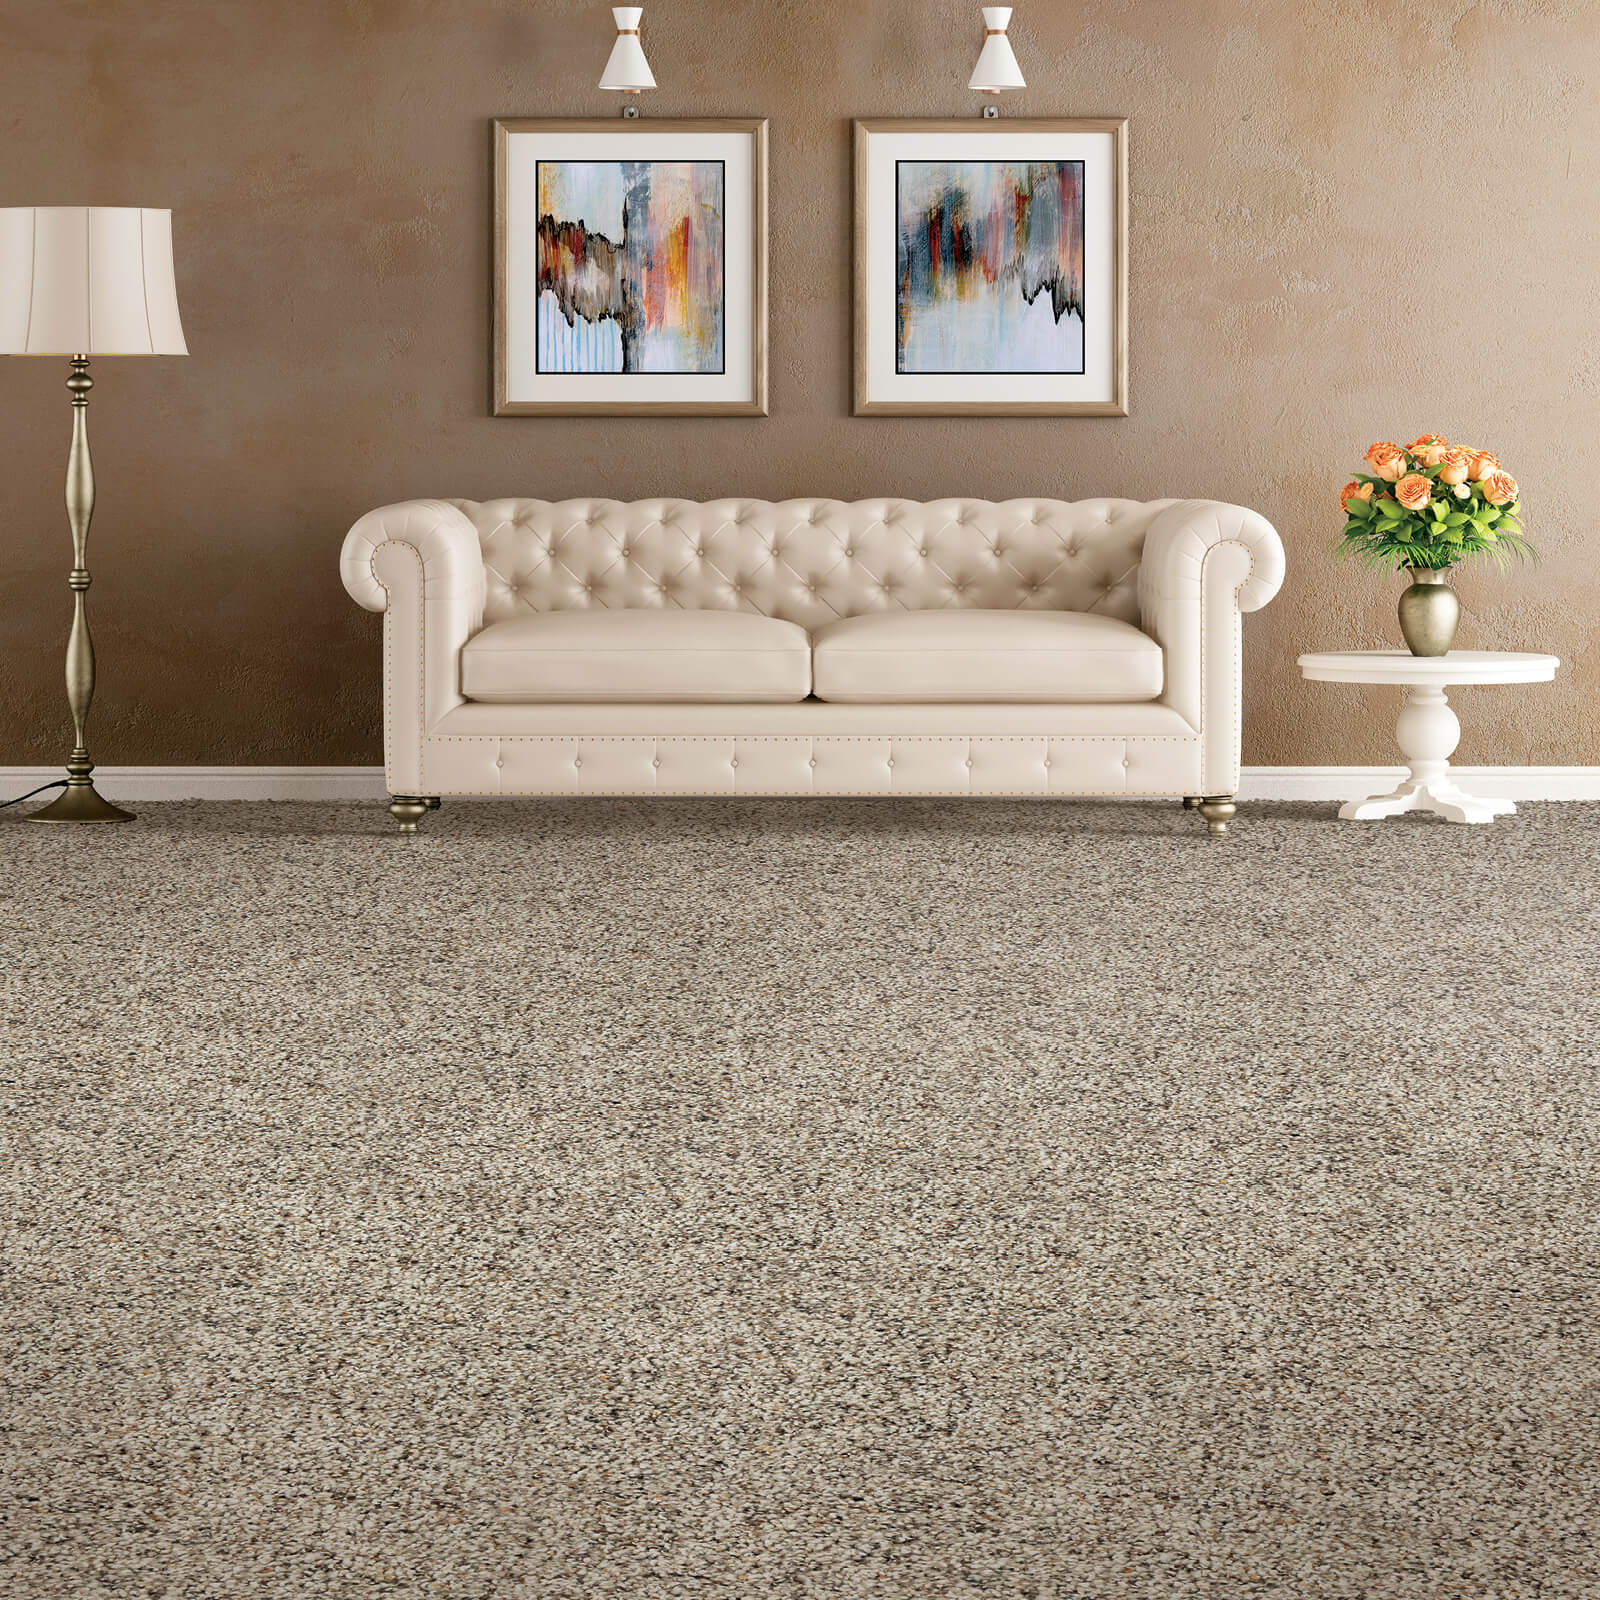 Carpet flooring | All Floors Design Centre